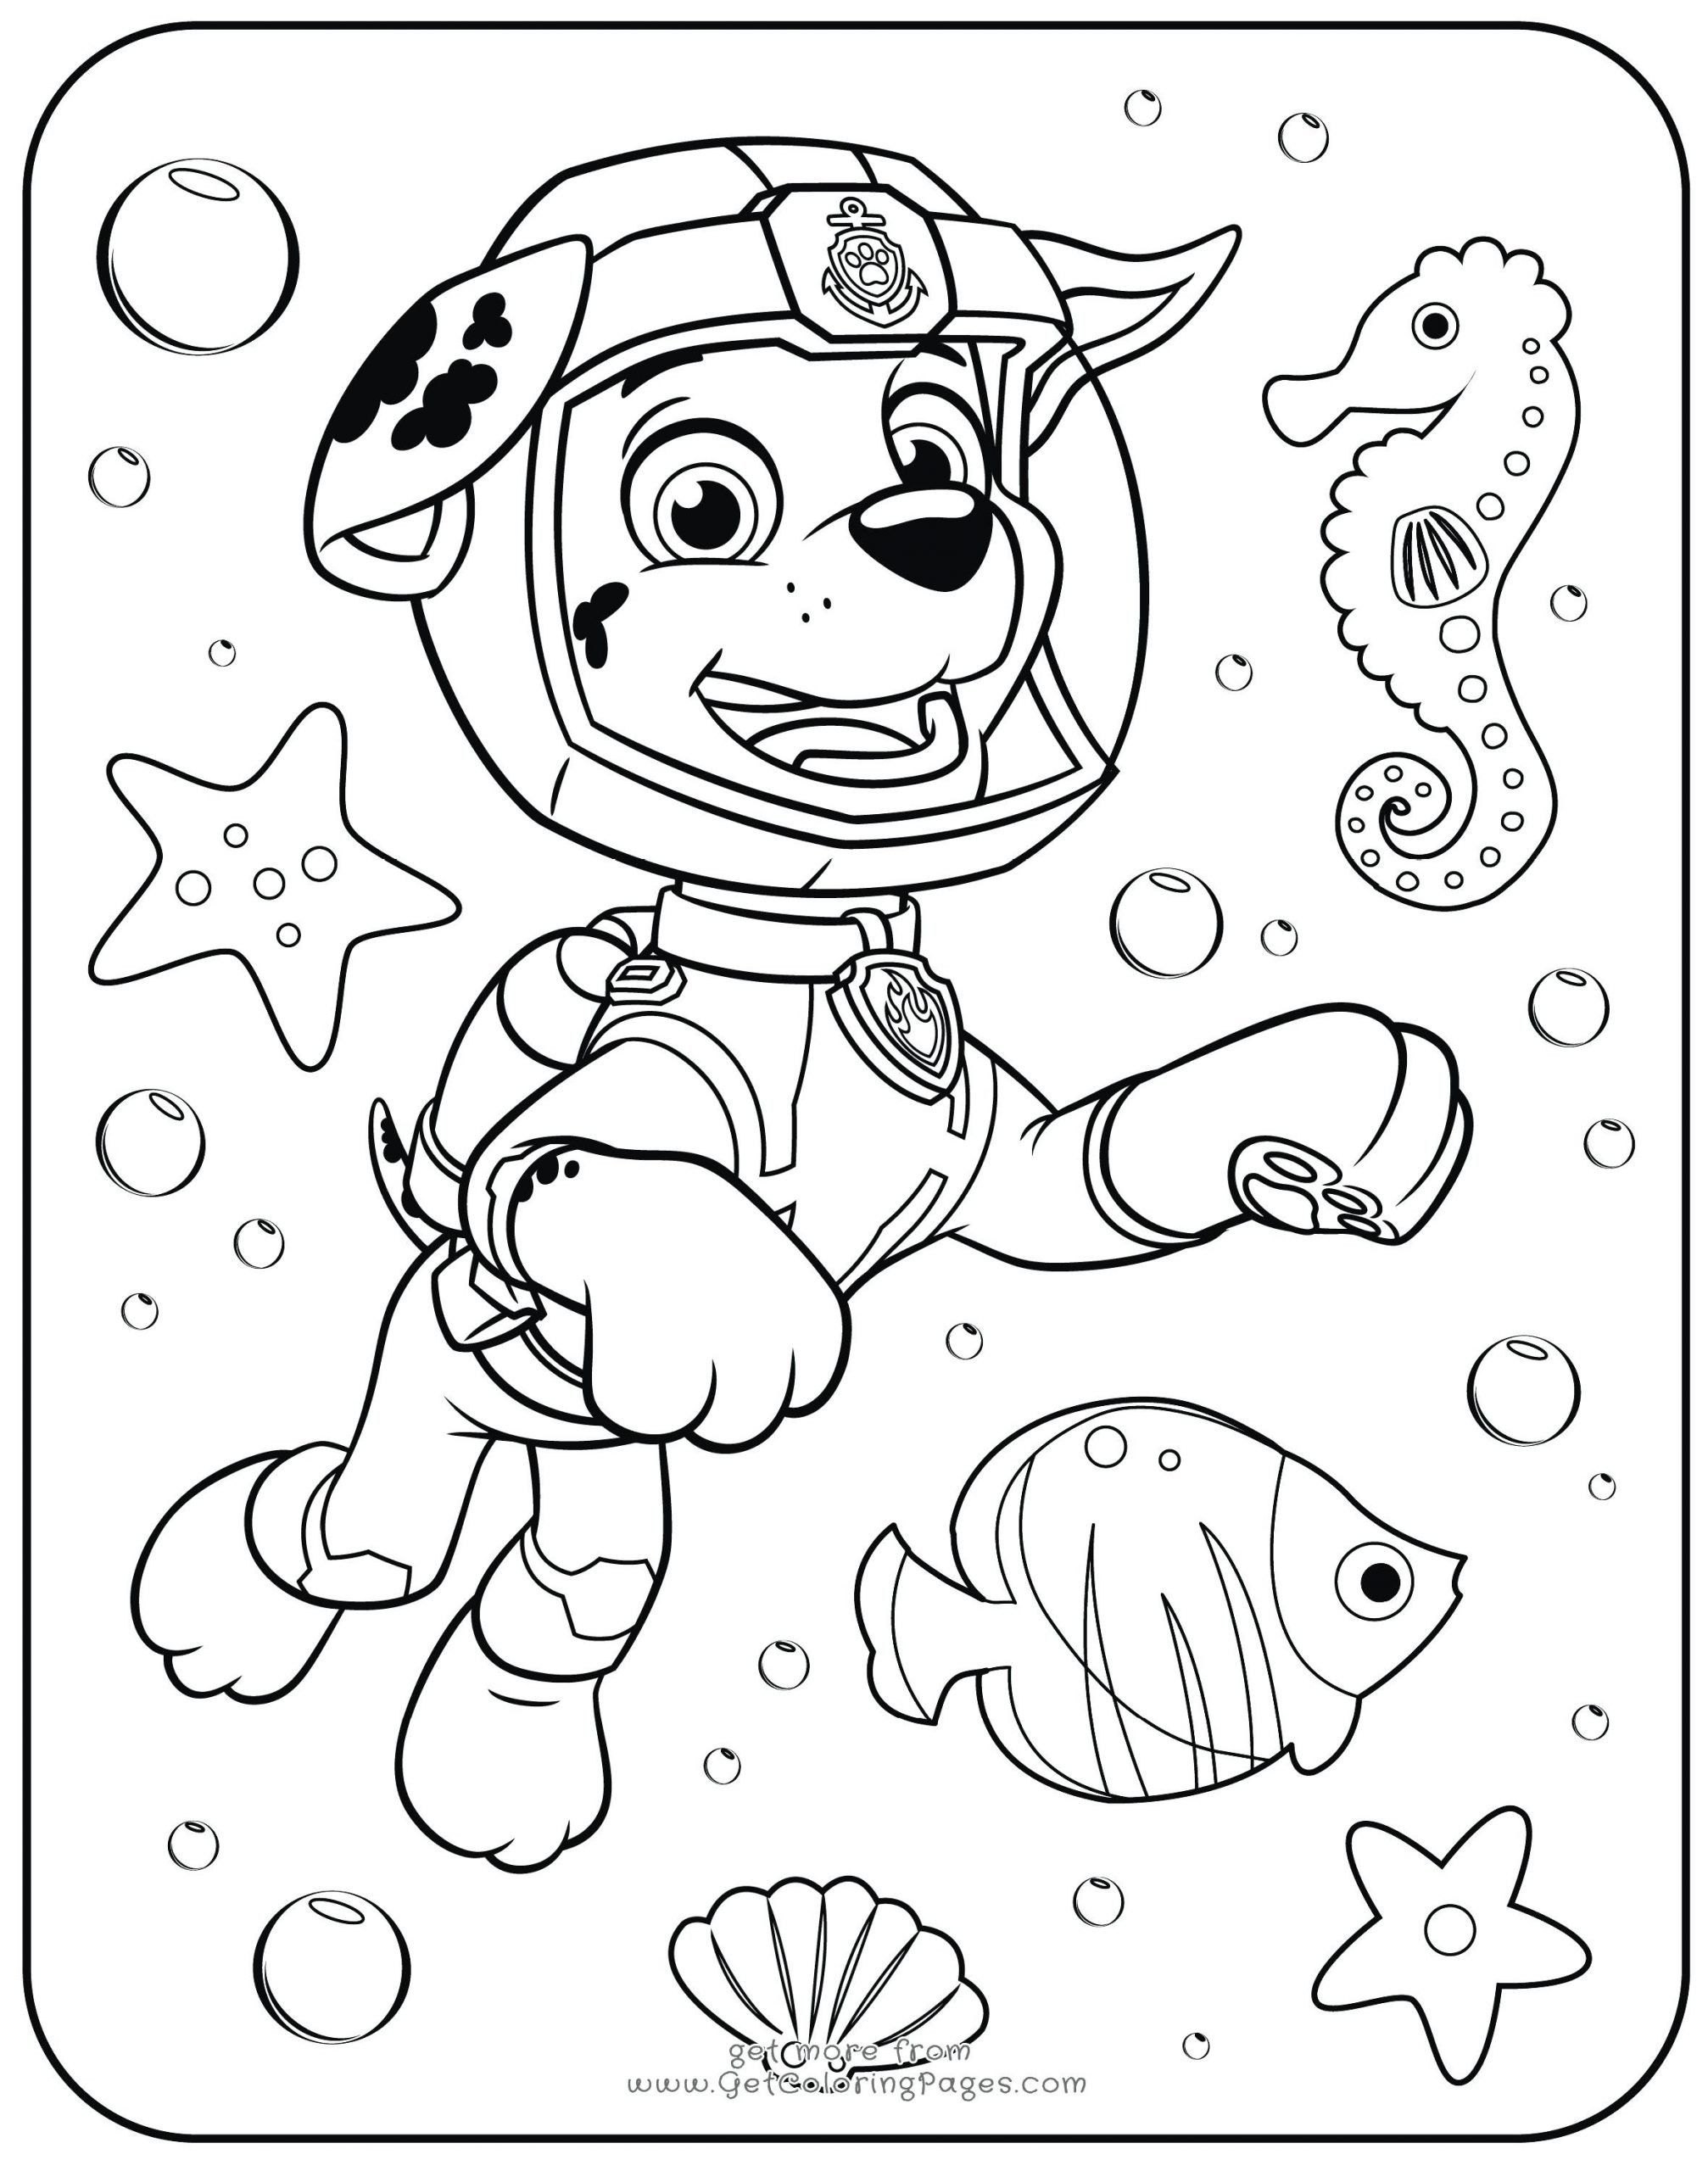 Paw Patrol Ausmalbilder Coloring Page for Kids Coloringge for Kids